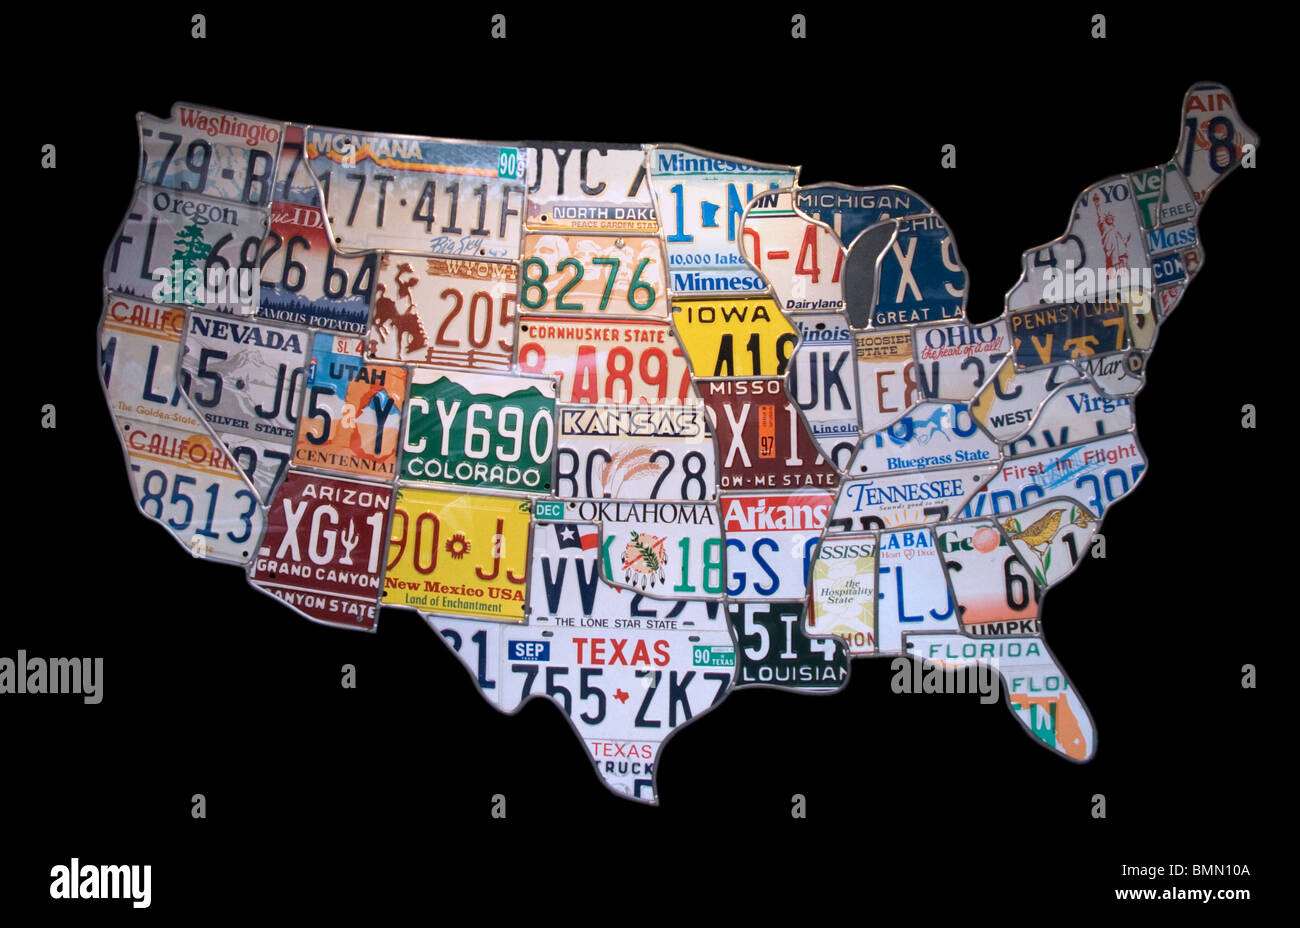 License Plate State Map.A United States Map Built With Car License Plates From Each State